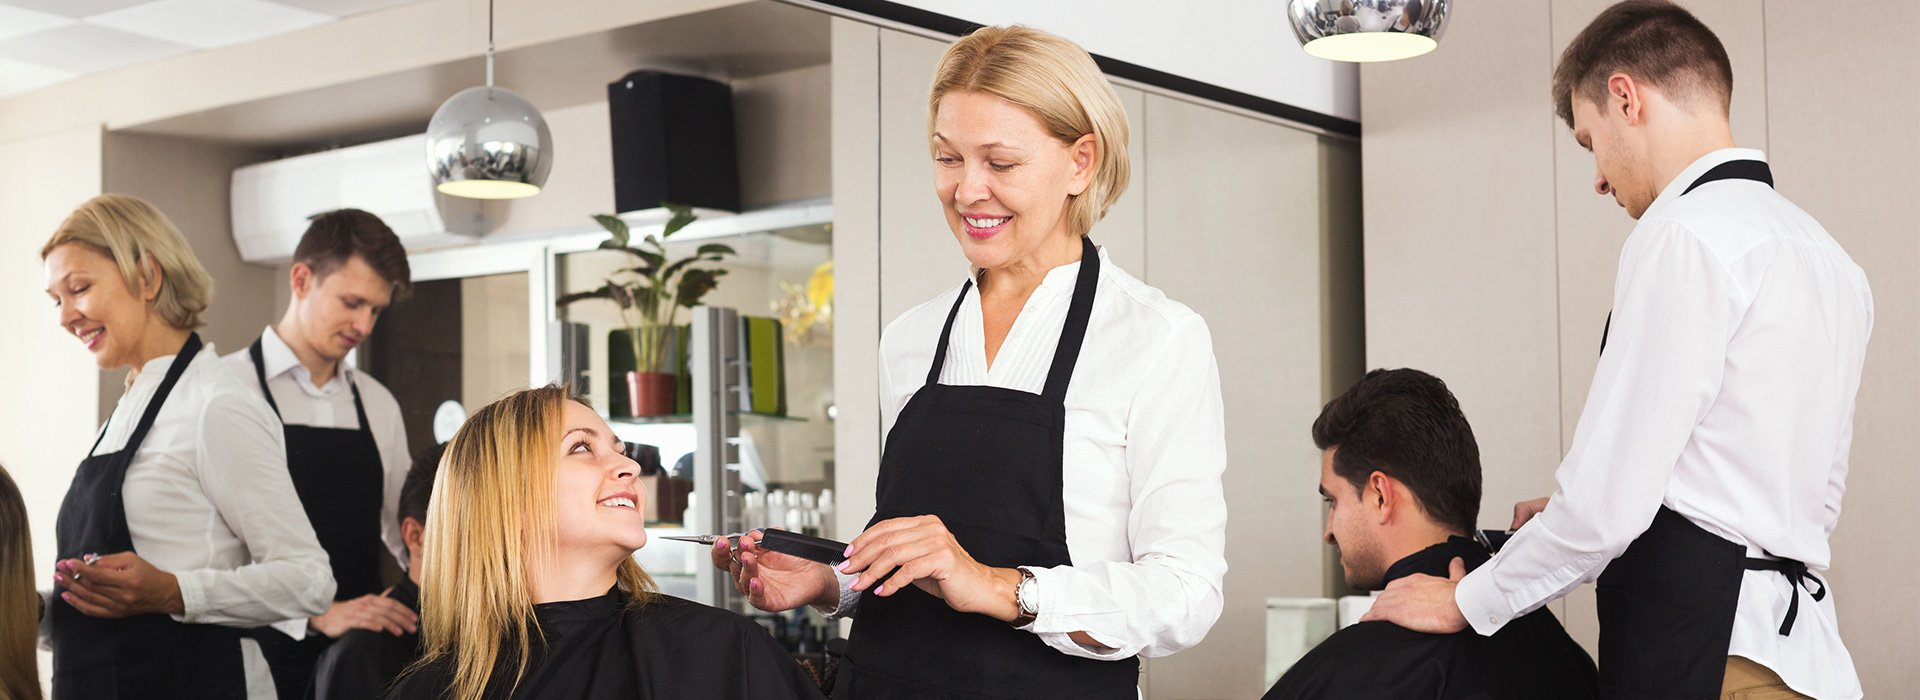 hairdressing services offered in salons Guest services teacher training there are 100+ schools and 100,000+ salons in the paul mitchell there's no name more respected in the beauty industry than.